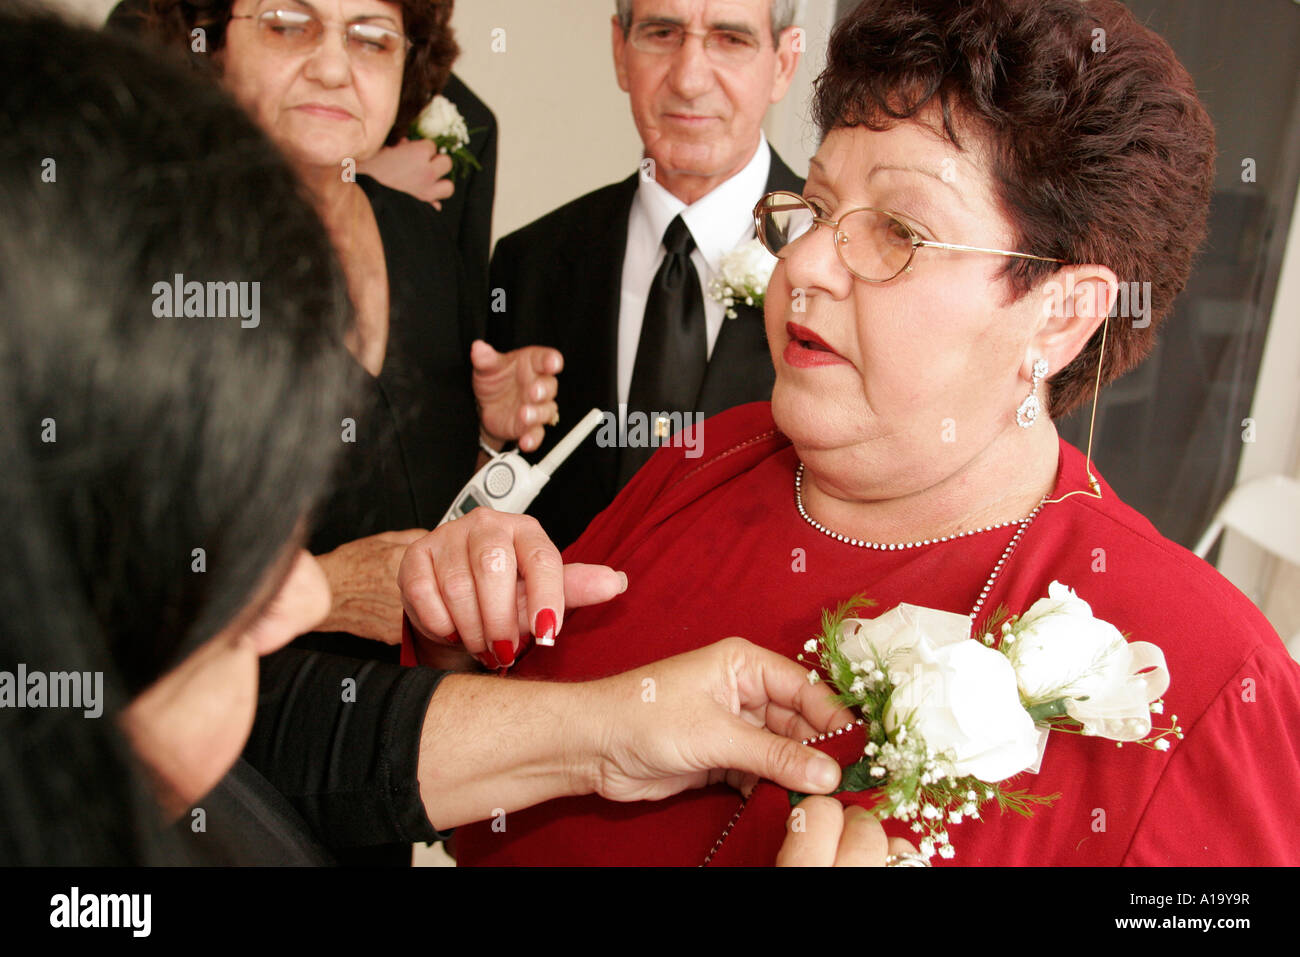 Brides Mother Stock Photos & Brides Mother Stock Images - Alamy